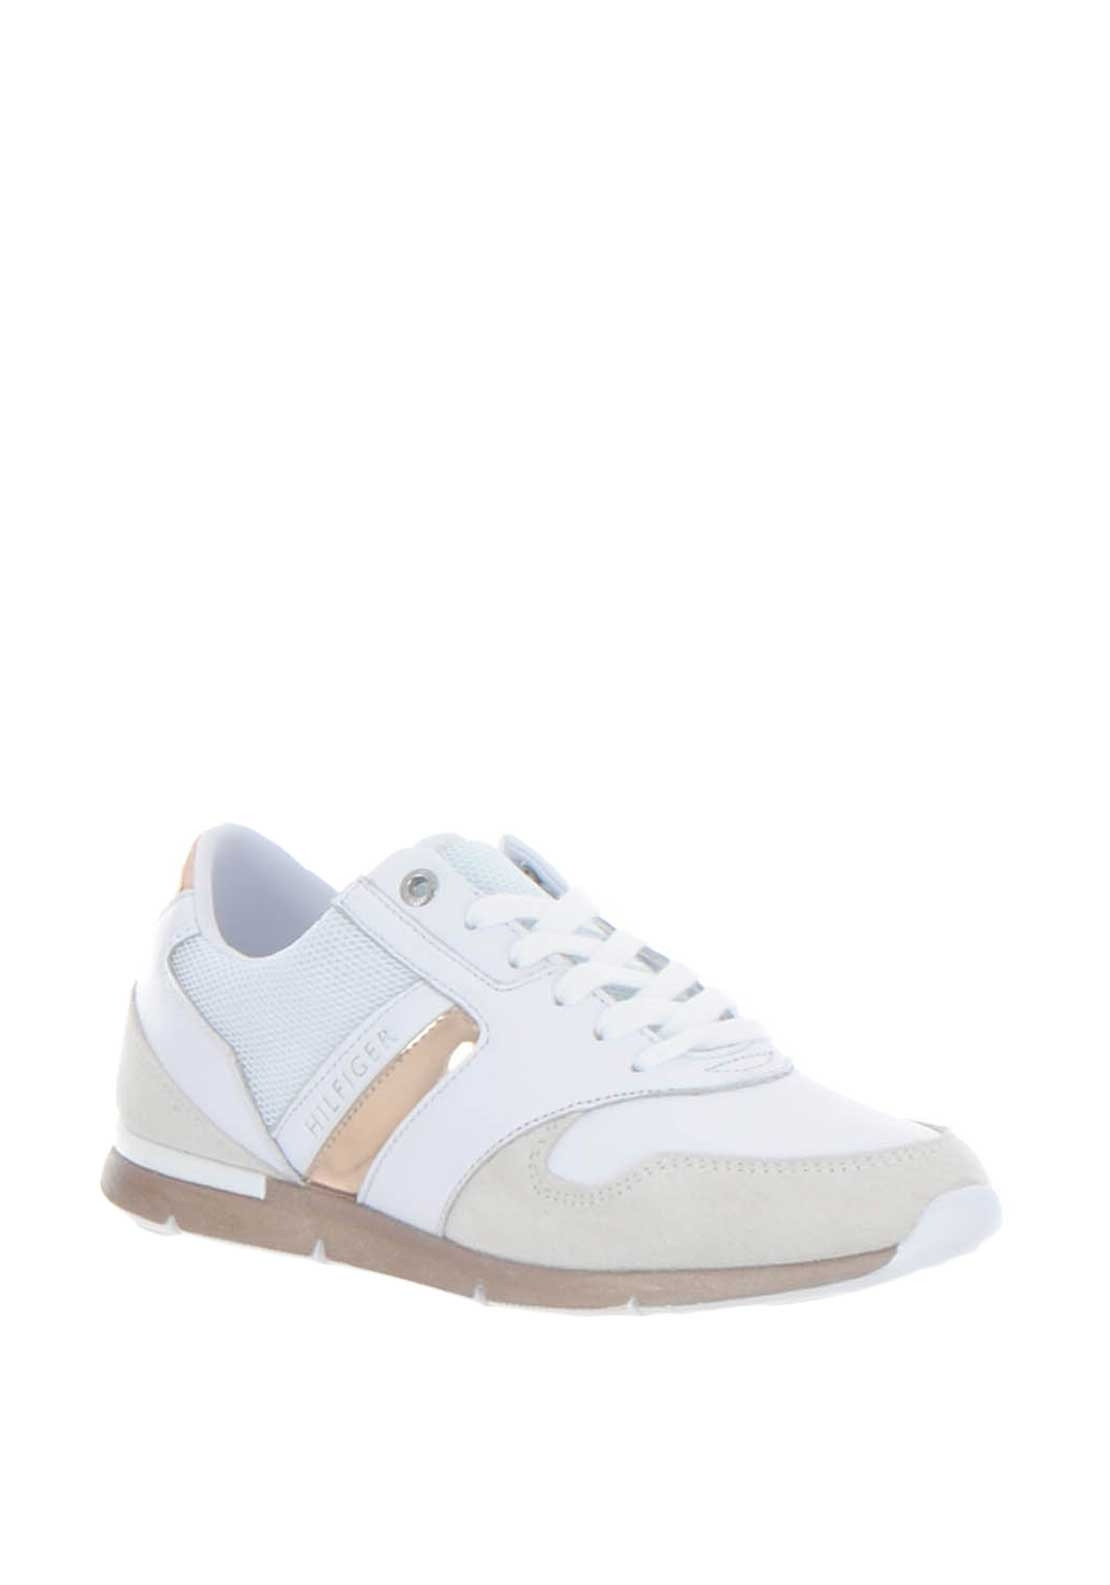 c27256533 Tommy Hilfiger Womens Iridescent Light Trainers